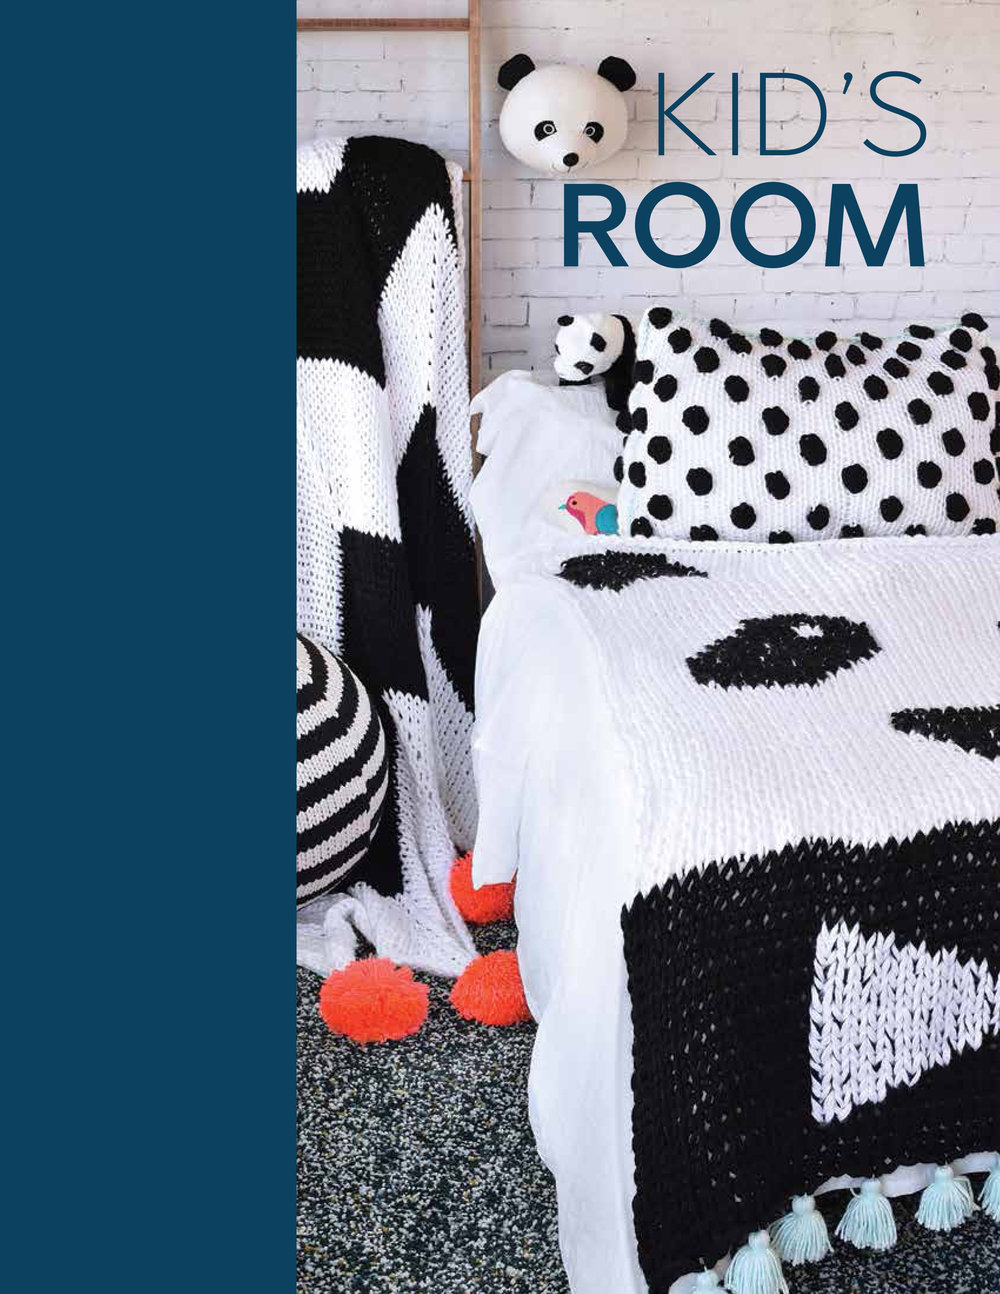 Kid's Room - Chevron BlanketPanda Throw BlanketDouble Stuffed Polka Dot PillowcaseStripy Ball Cover